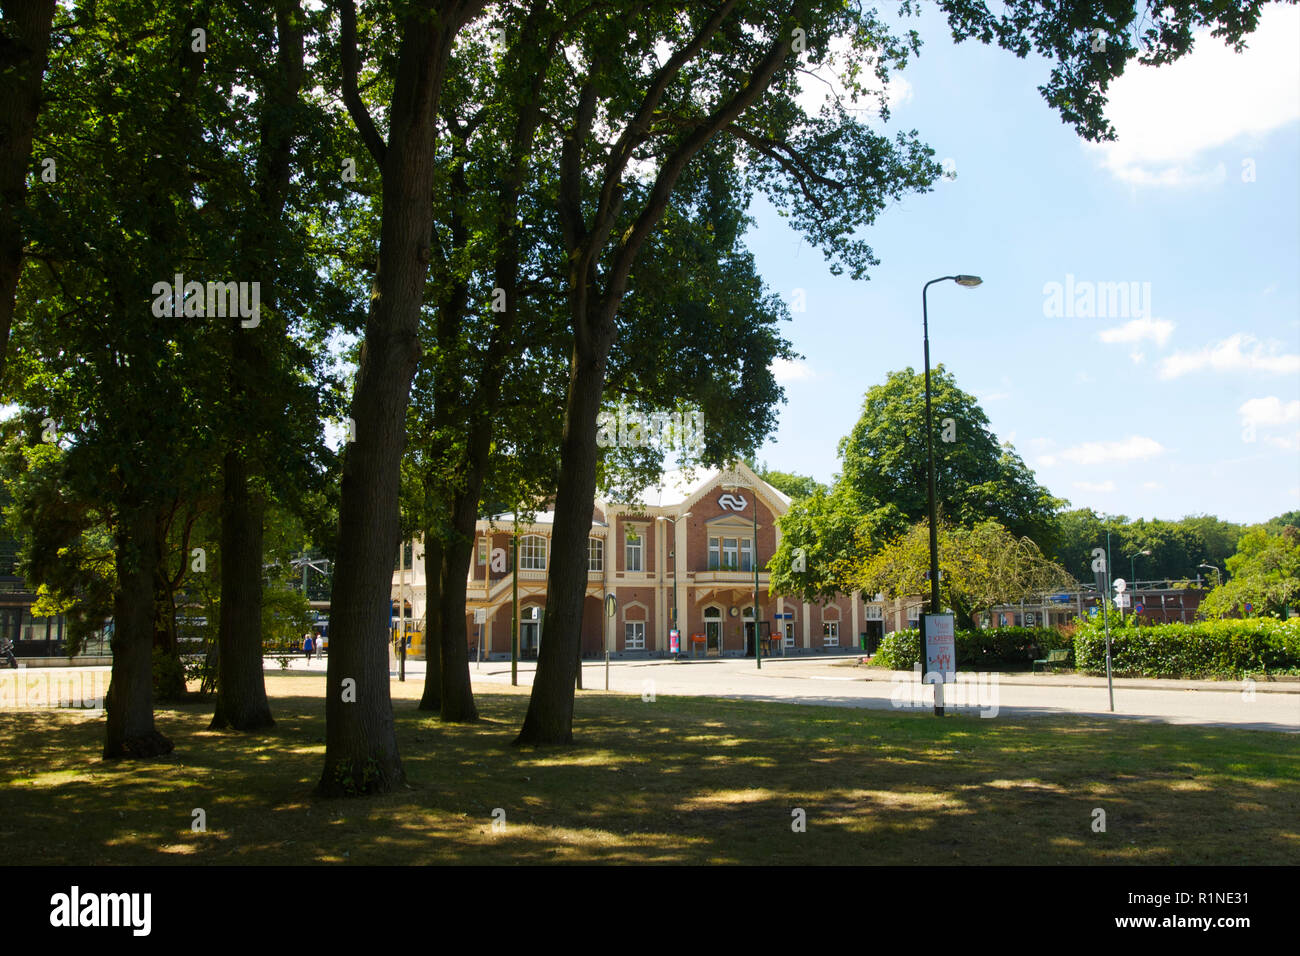 The front side of the historic railway station used for the Dutch Royal family in Baarn, the Netherlands - Stock Image